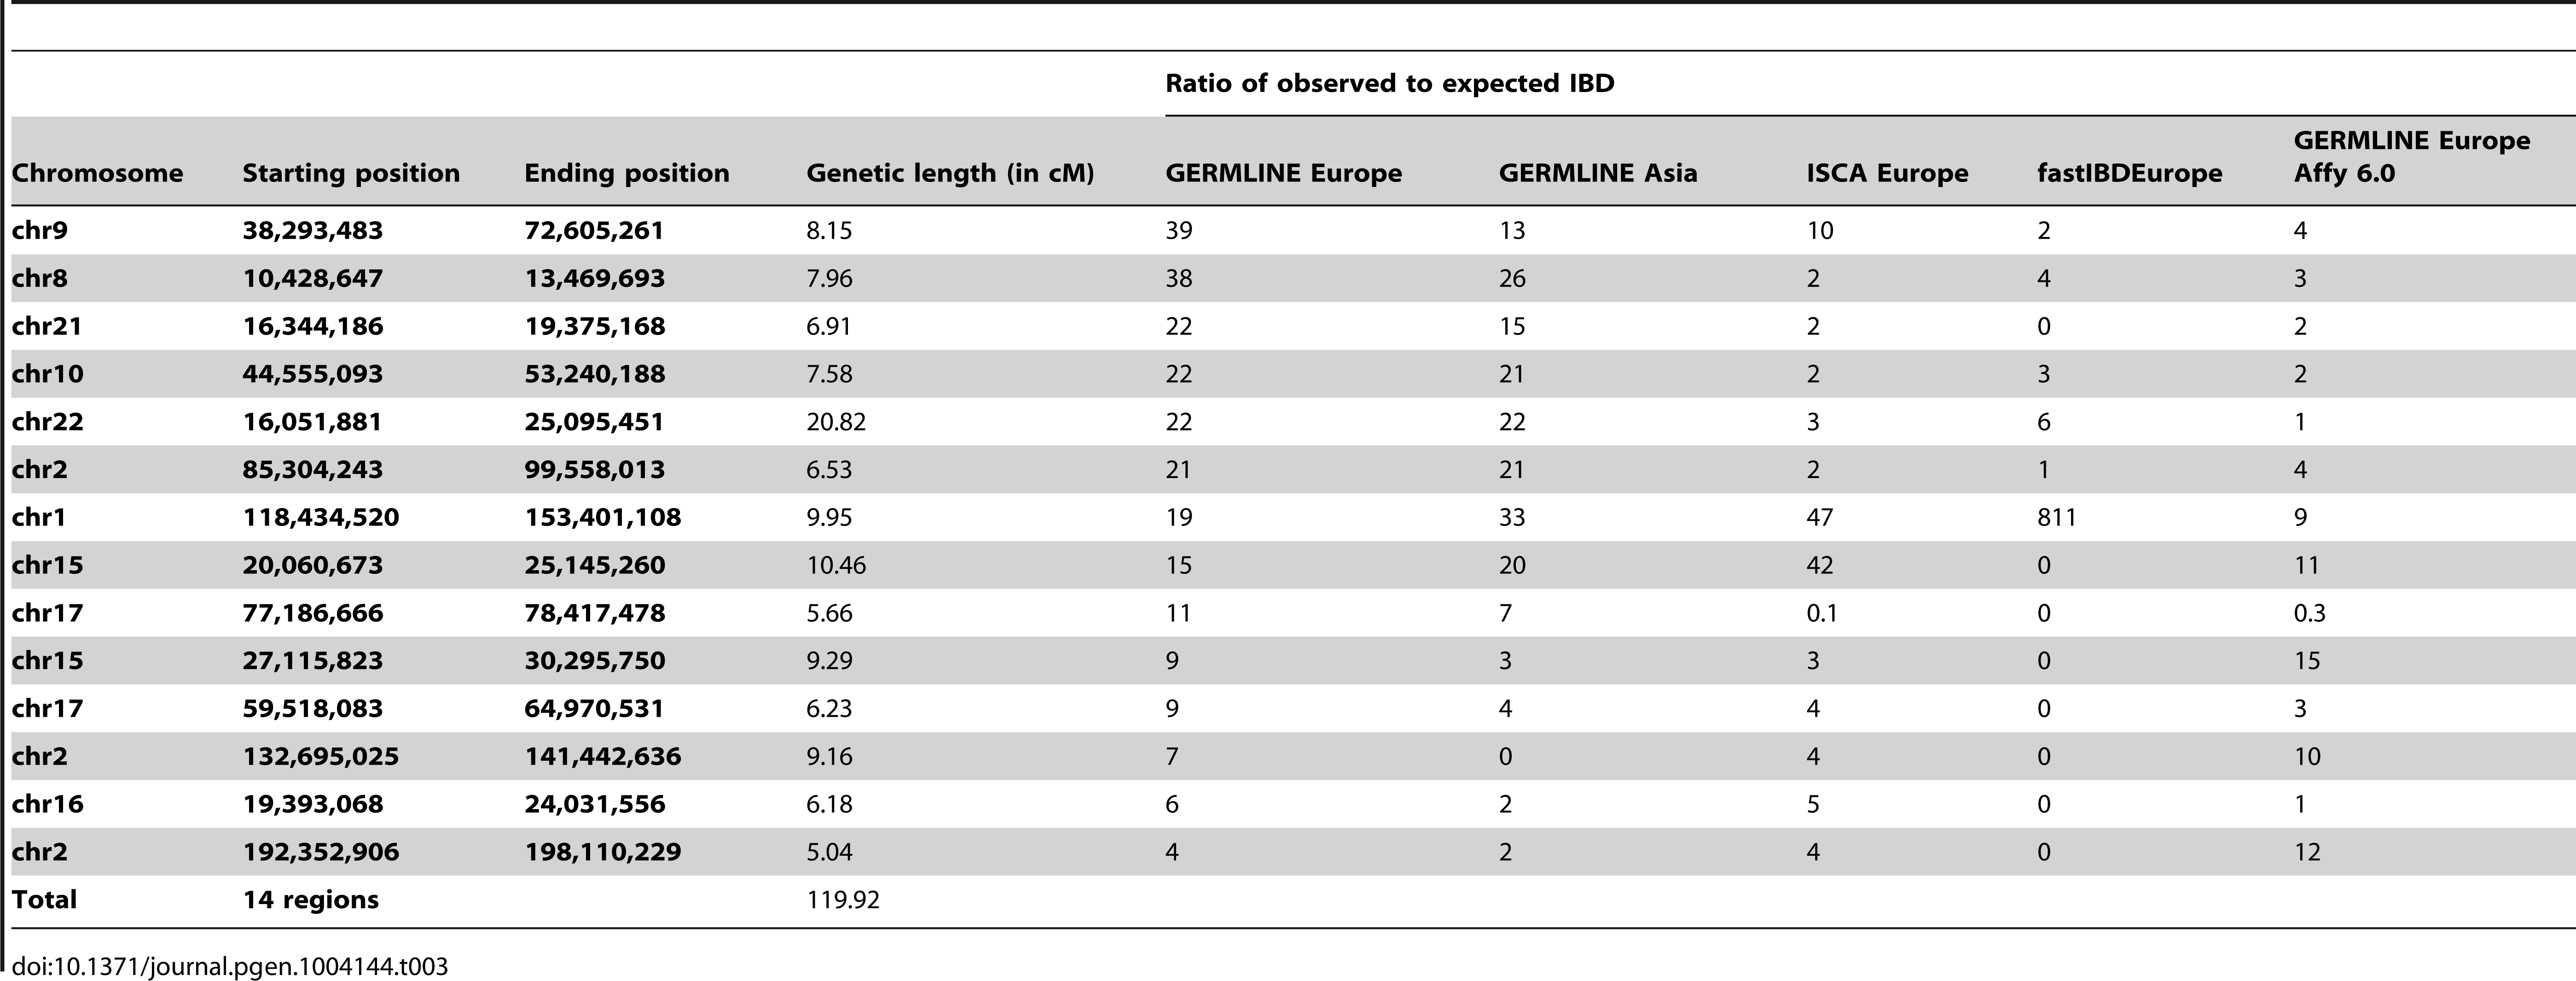 Genomic Regions in hg19 coordinates of at least 5-to-expected IBD of at least 4-fold.